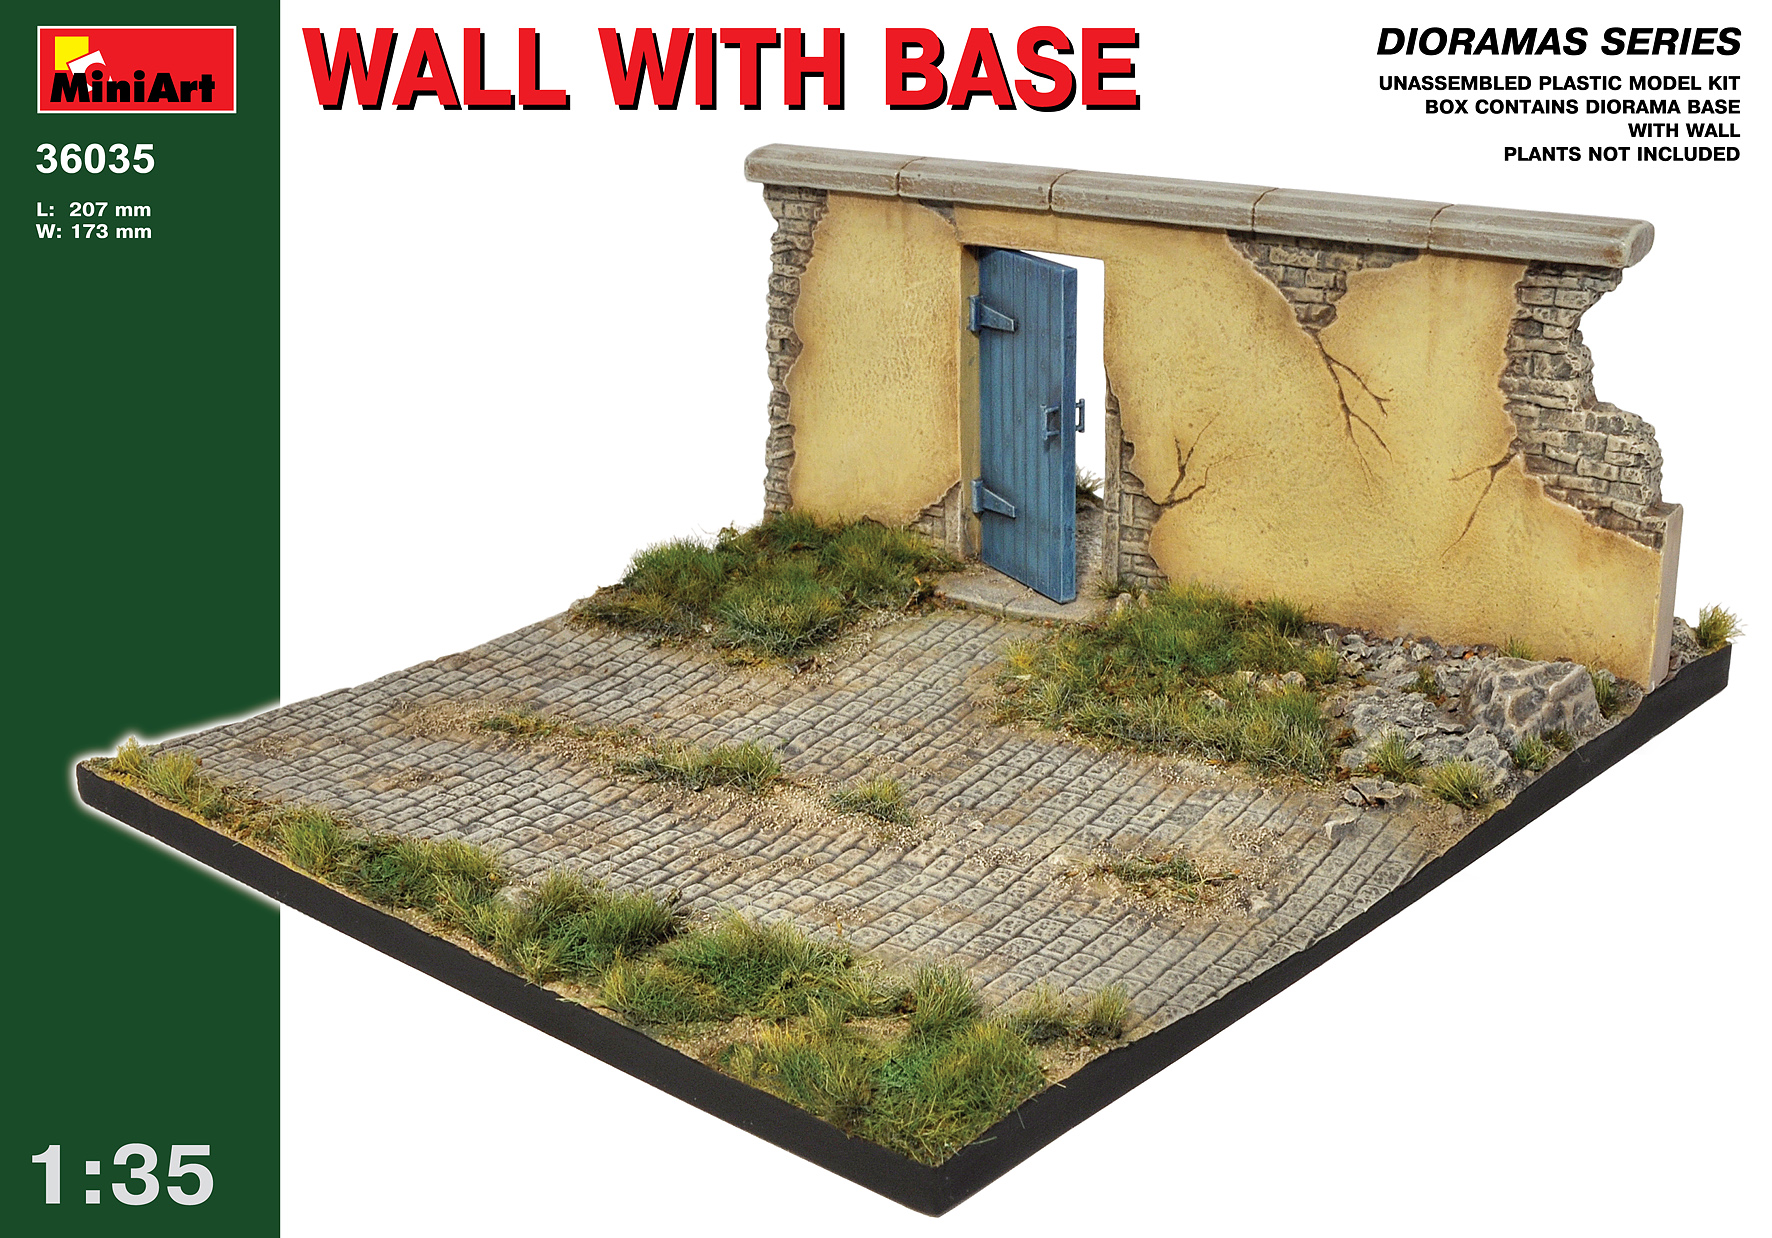 36035 WALL WITH BASE